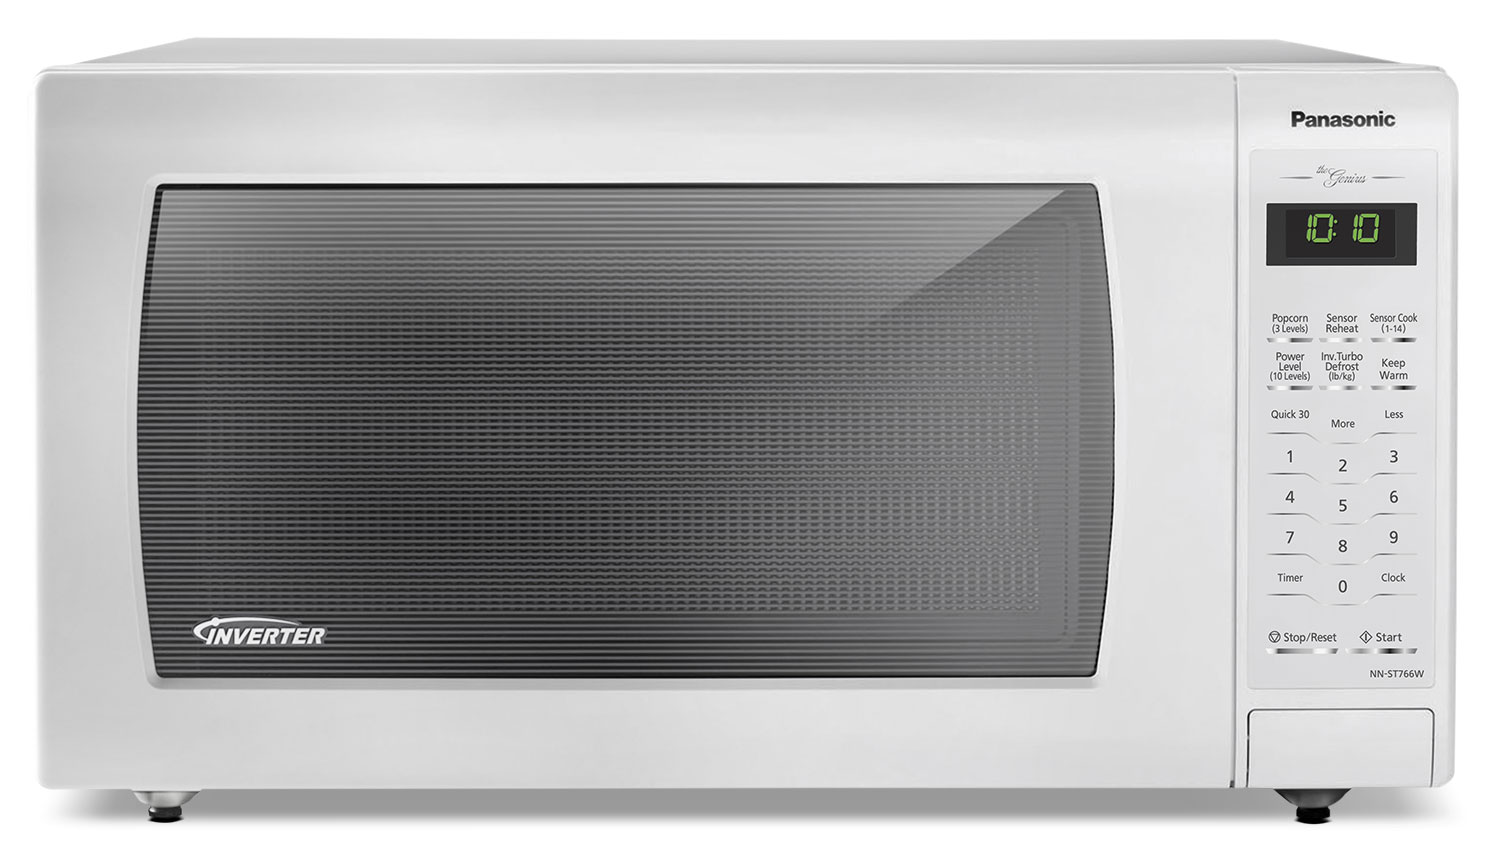 Cooking Products - Panasonic Genius® 1.6 Cu. Ft. Countertop Microwave – NN-ST766W